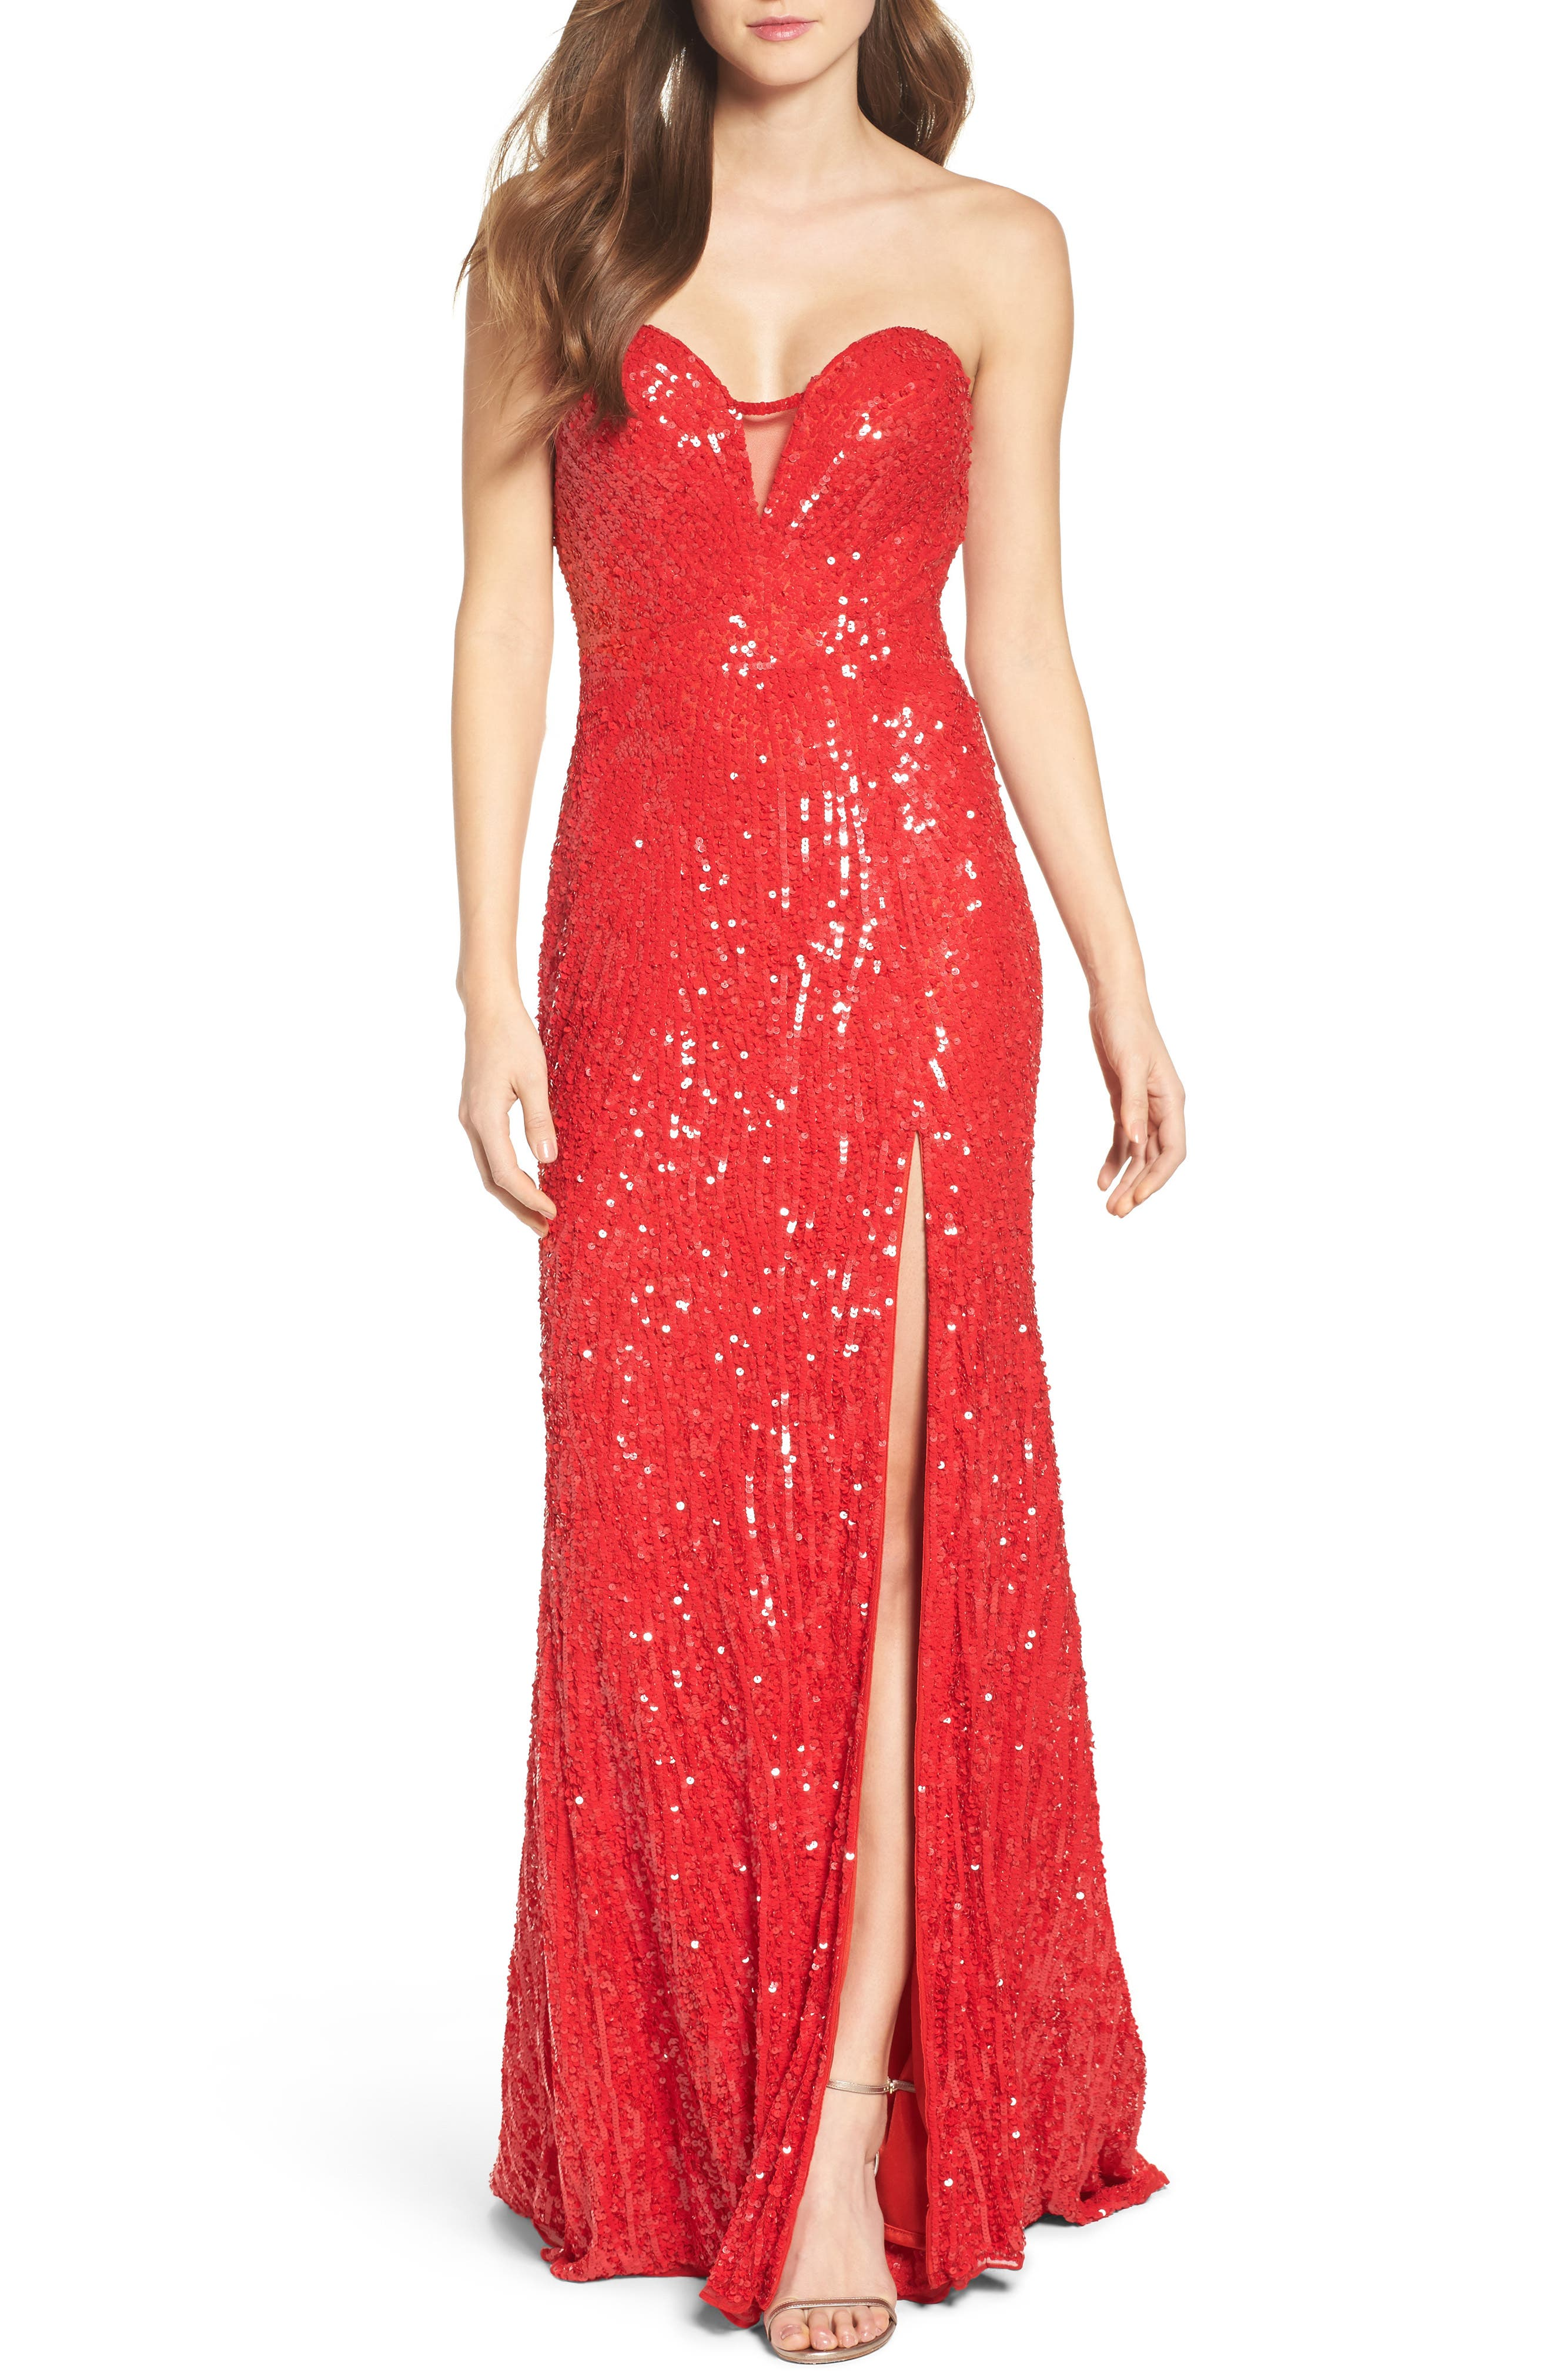 Alternate Image 1 Selected - Mac Duggal Front Slit Sequin Strapless Gown